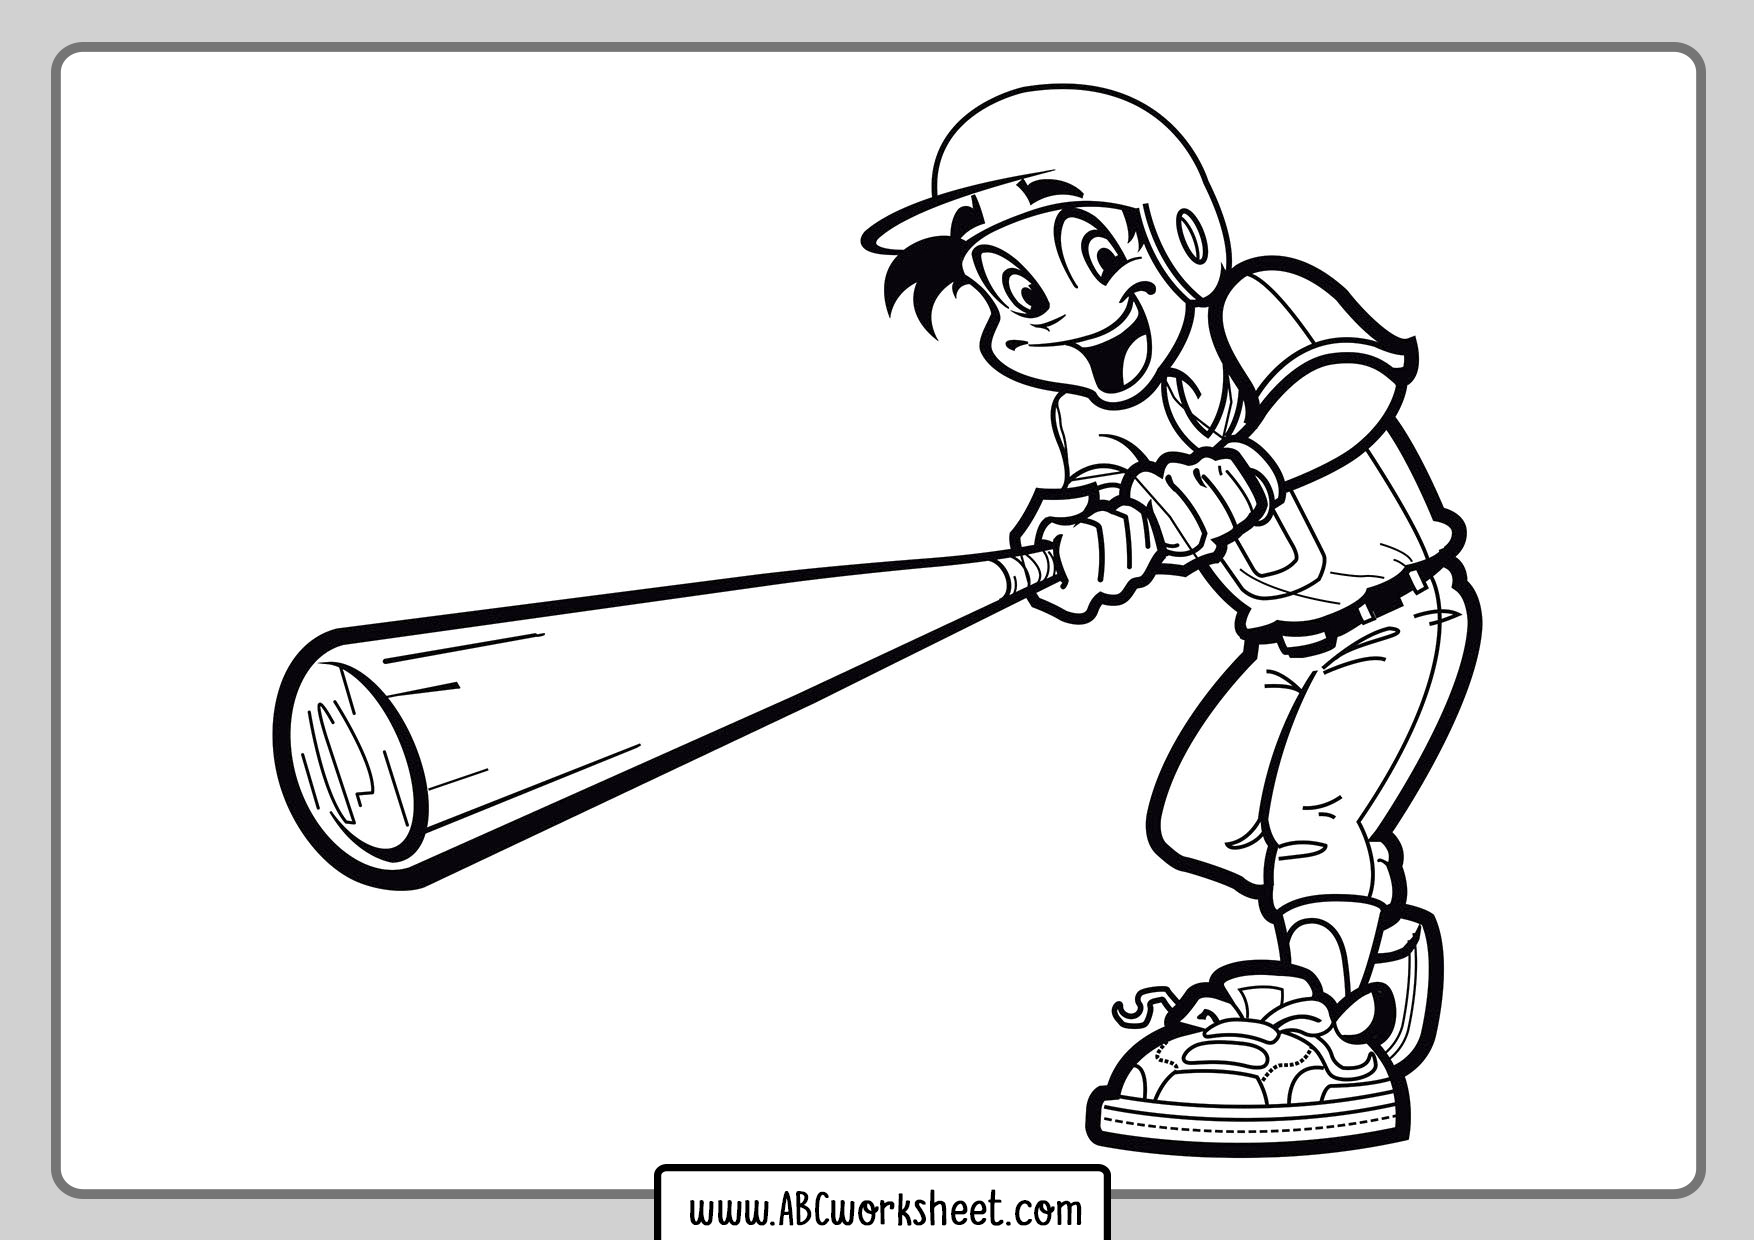 Baseball Player For Coloring